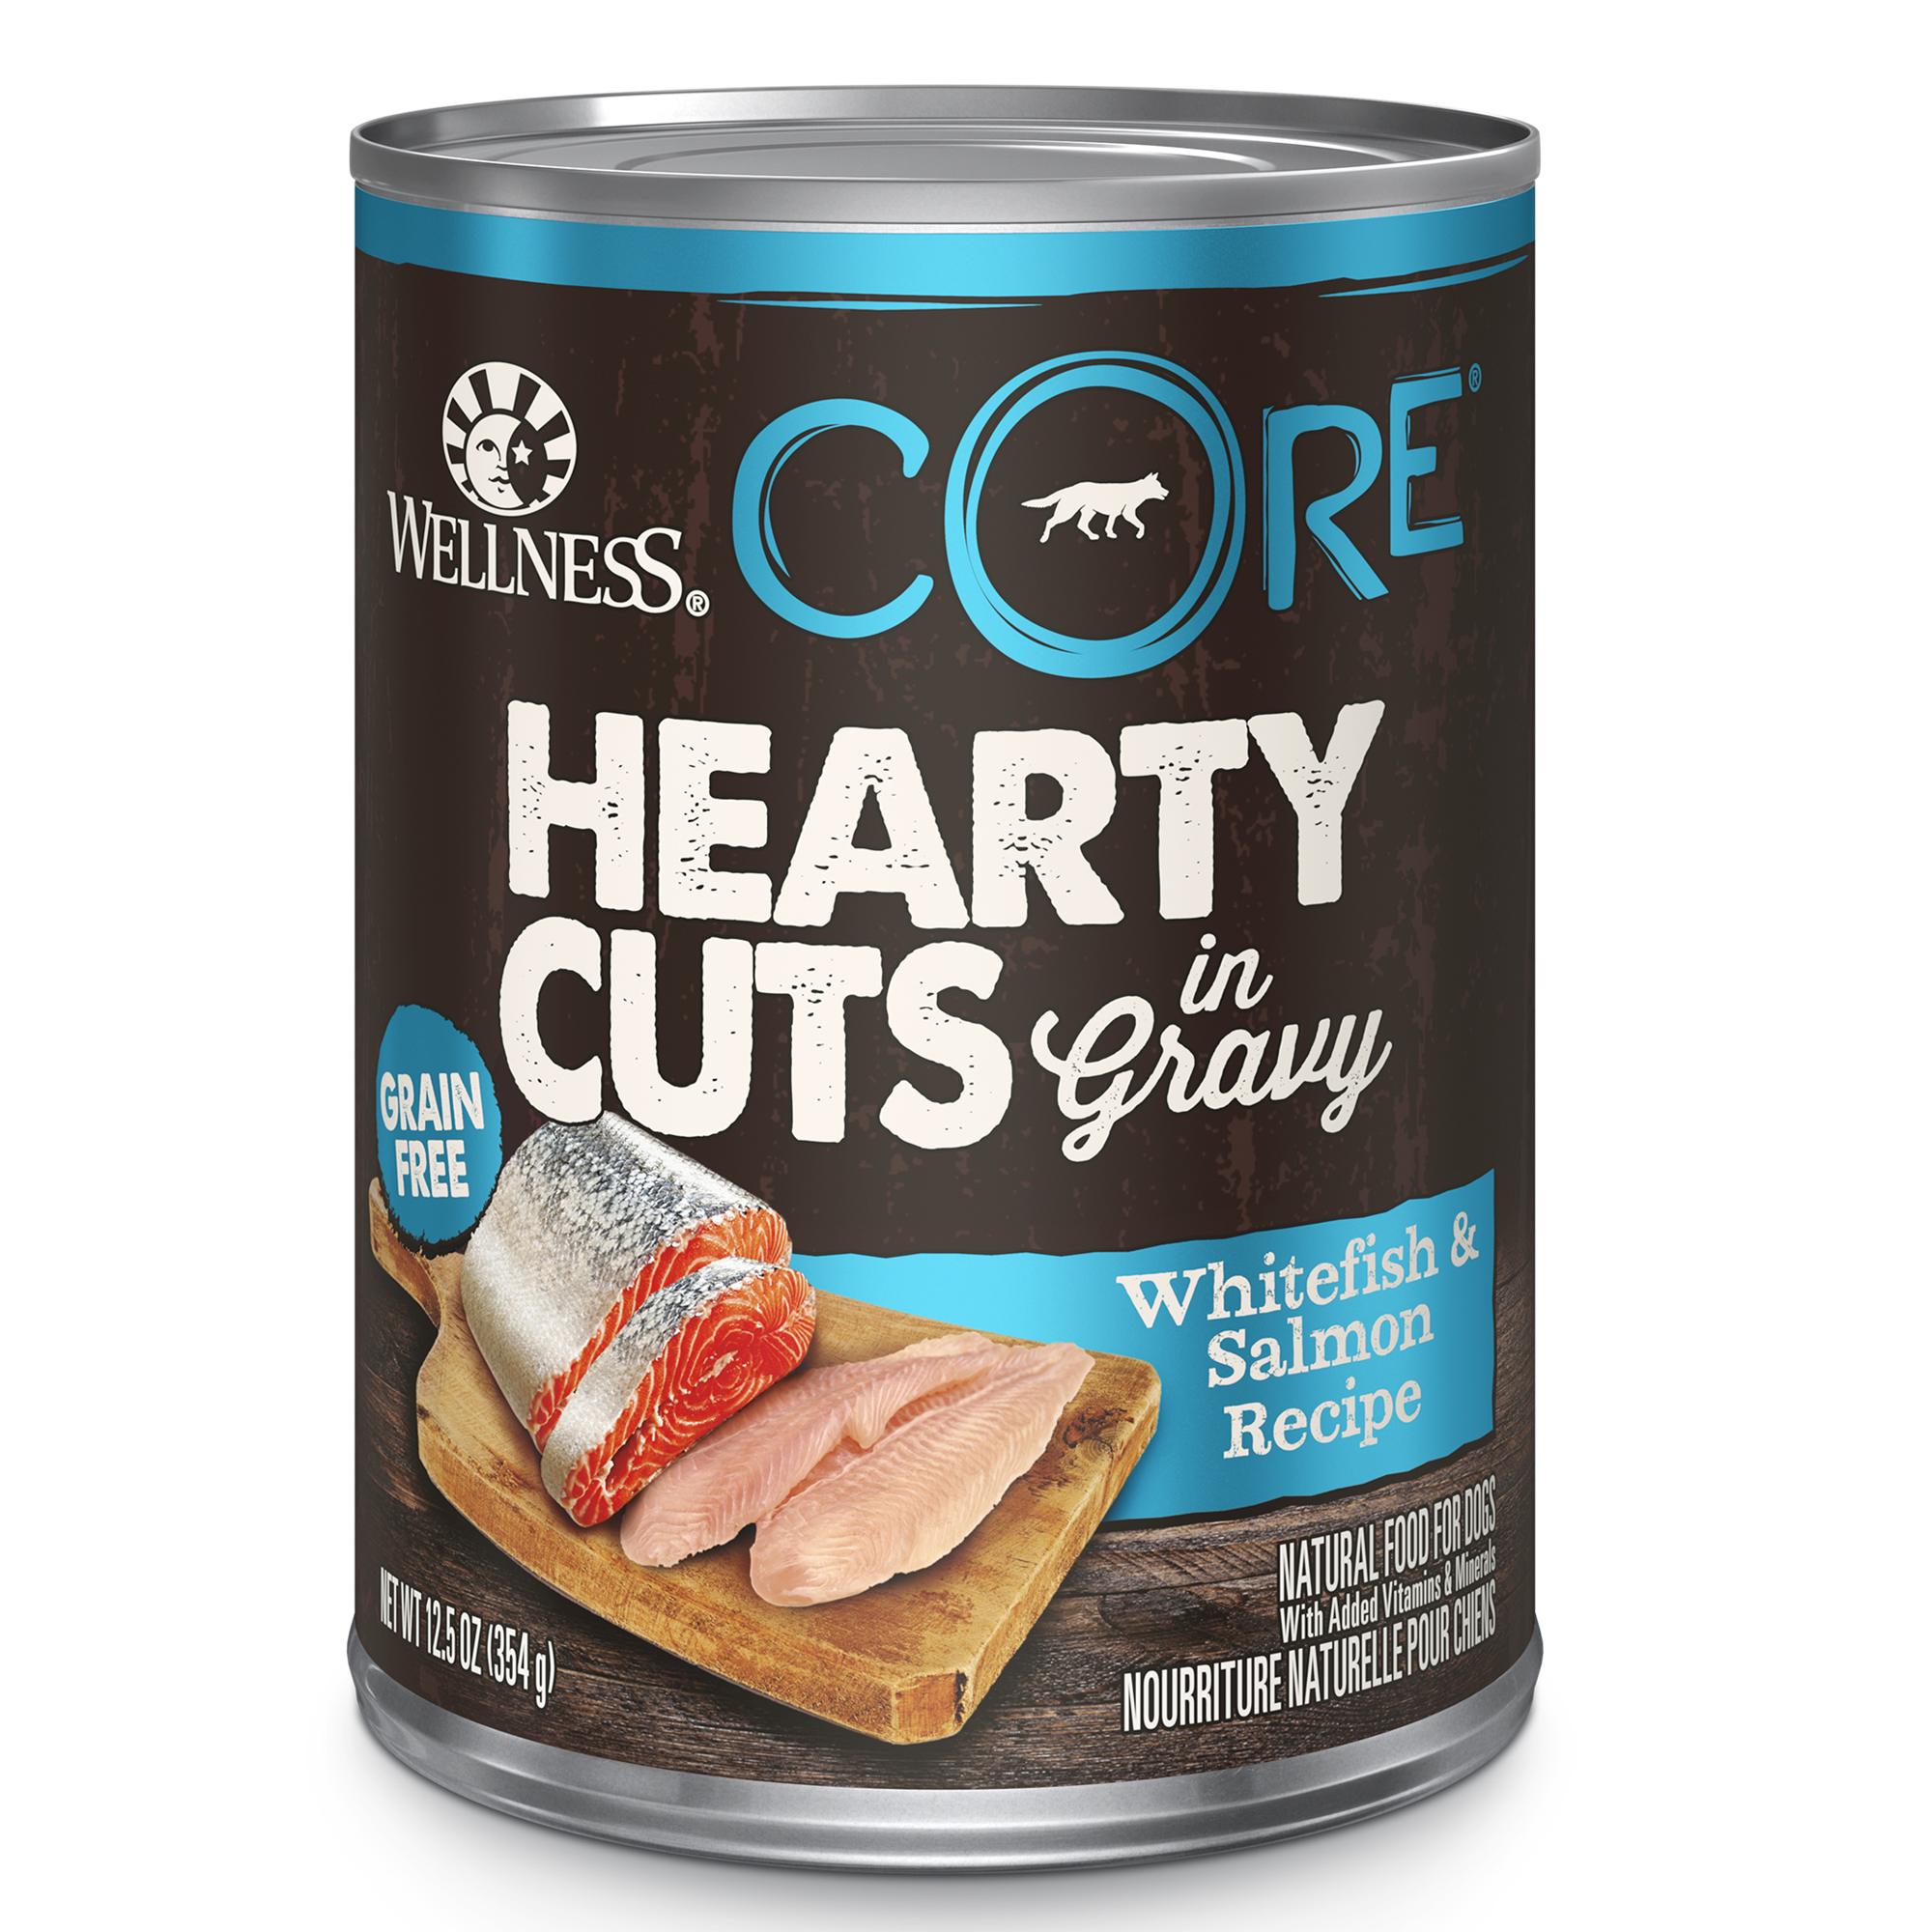 Hearty Cuts Whitefish and Salmon